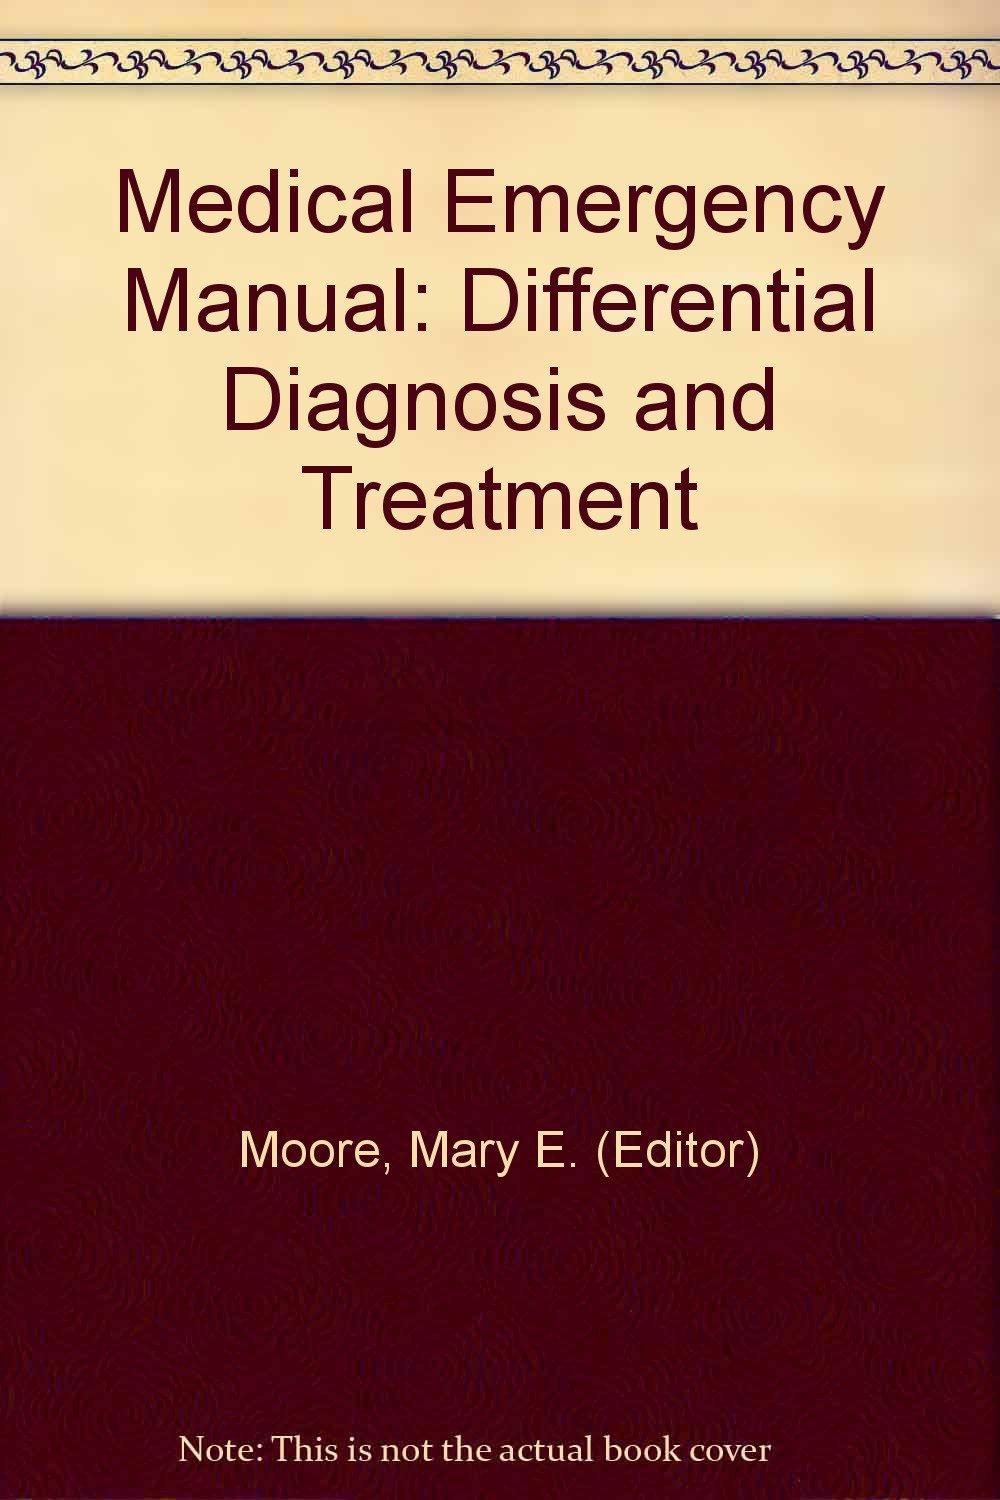 Medical Emergency Manual: Differential Diagnosis and Treatment: Mary E.  (Editor) Moore: Amazon.com: Books